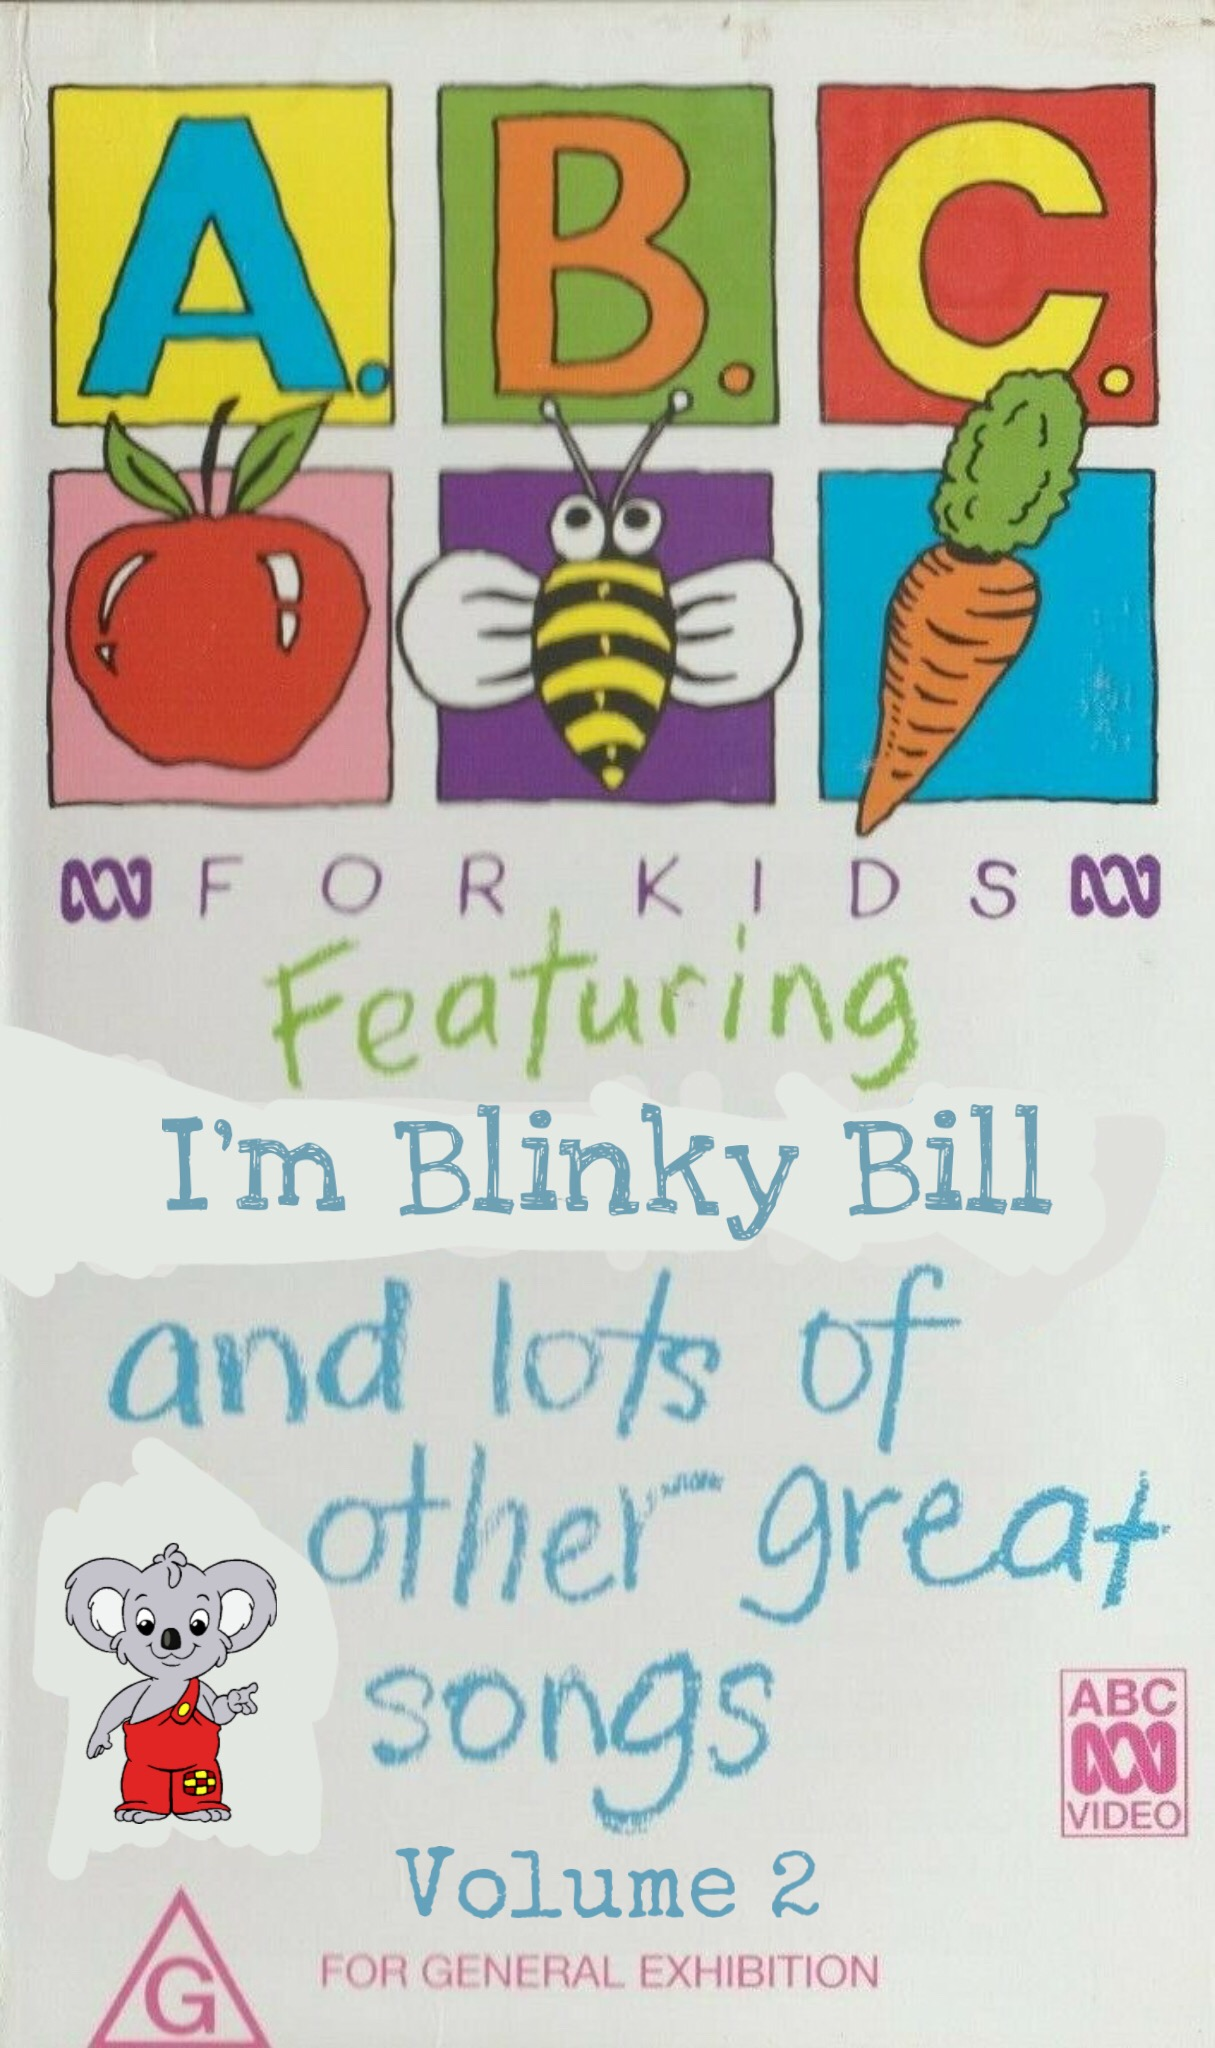 ABC For Kids Fanon:ABC For Kids: Featuring I'm Blinky Bill and Lots of Great Songs Volume 2